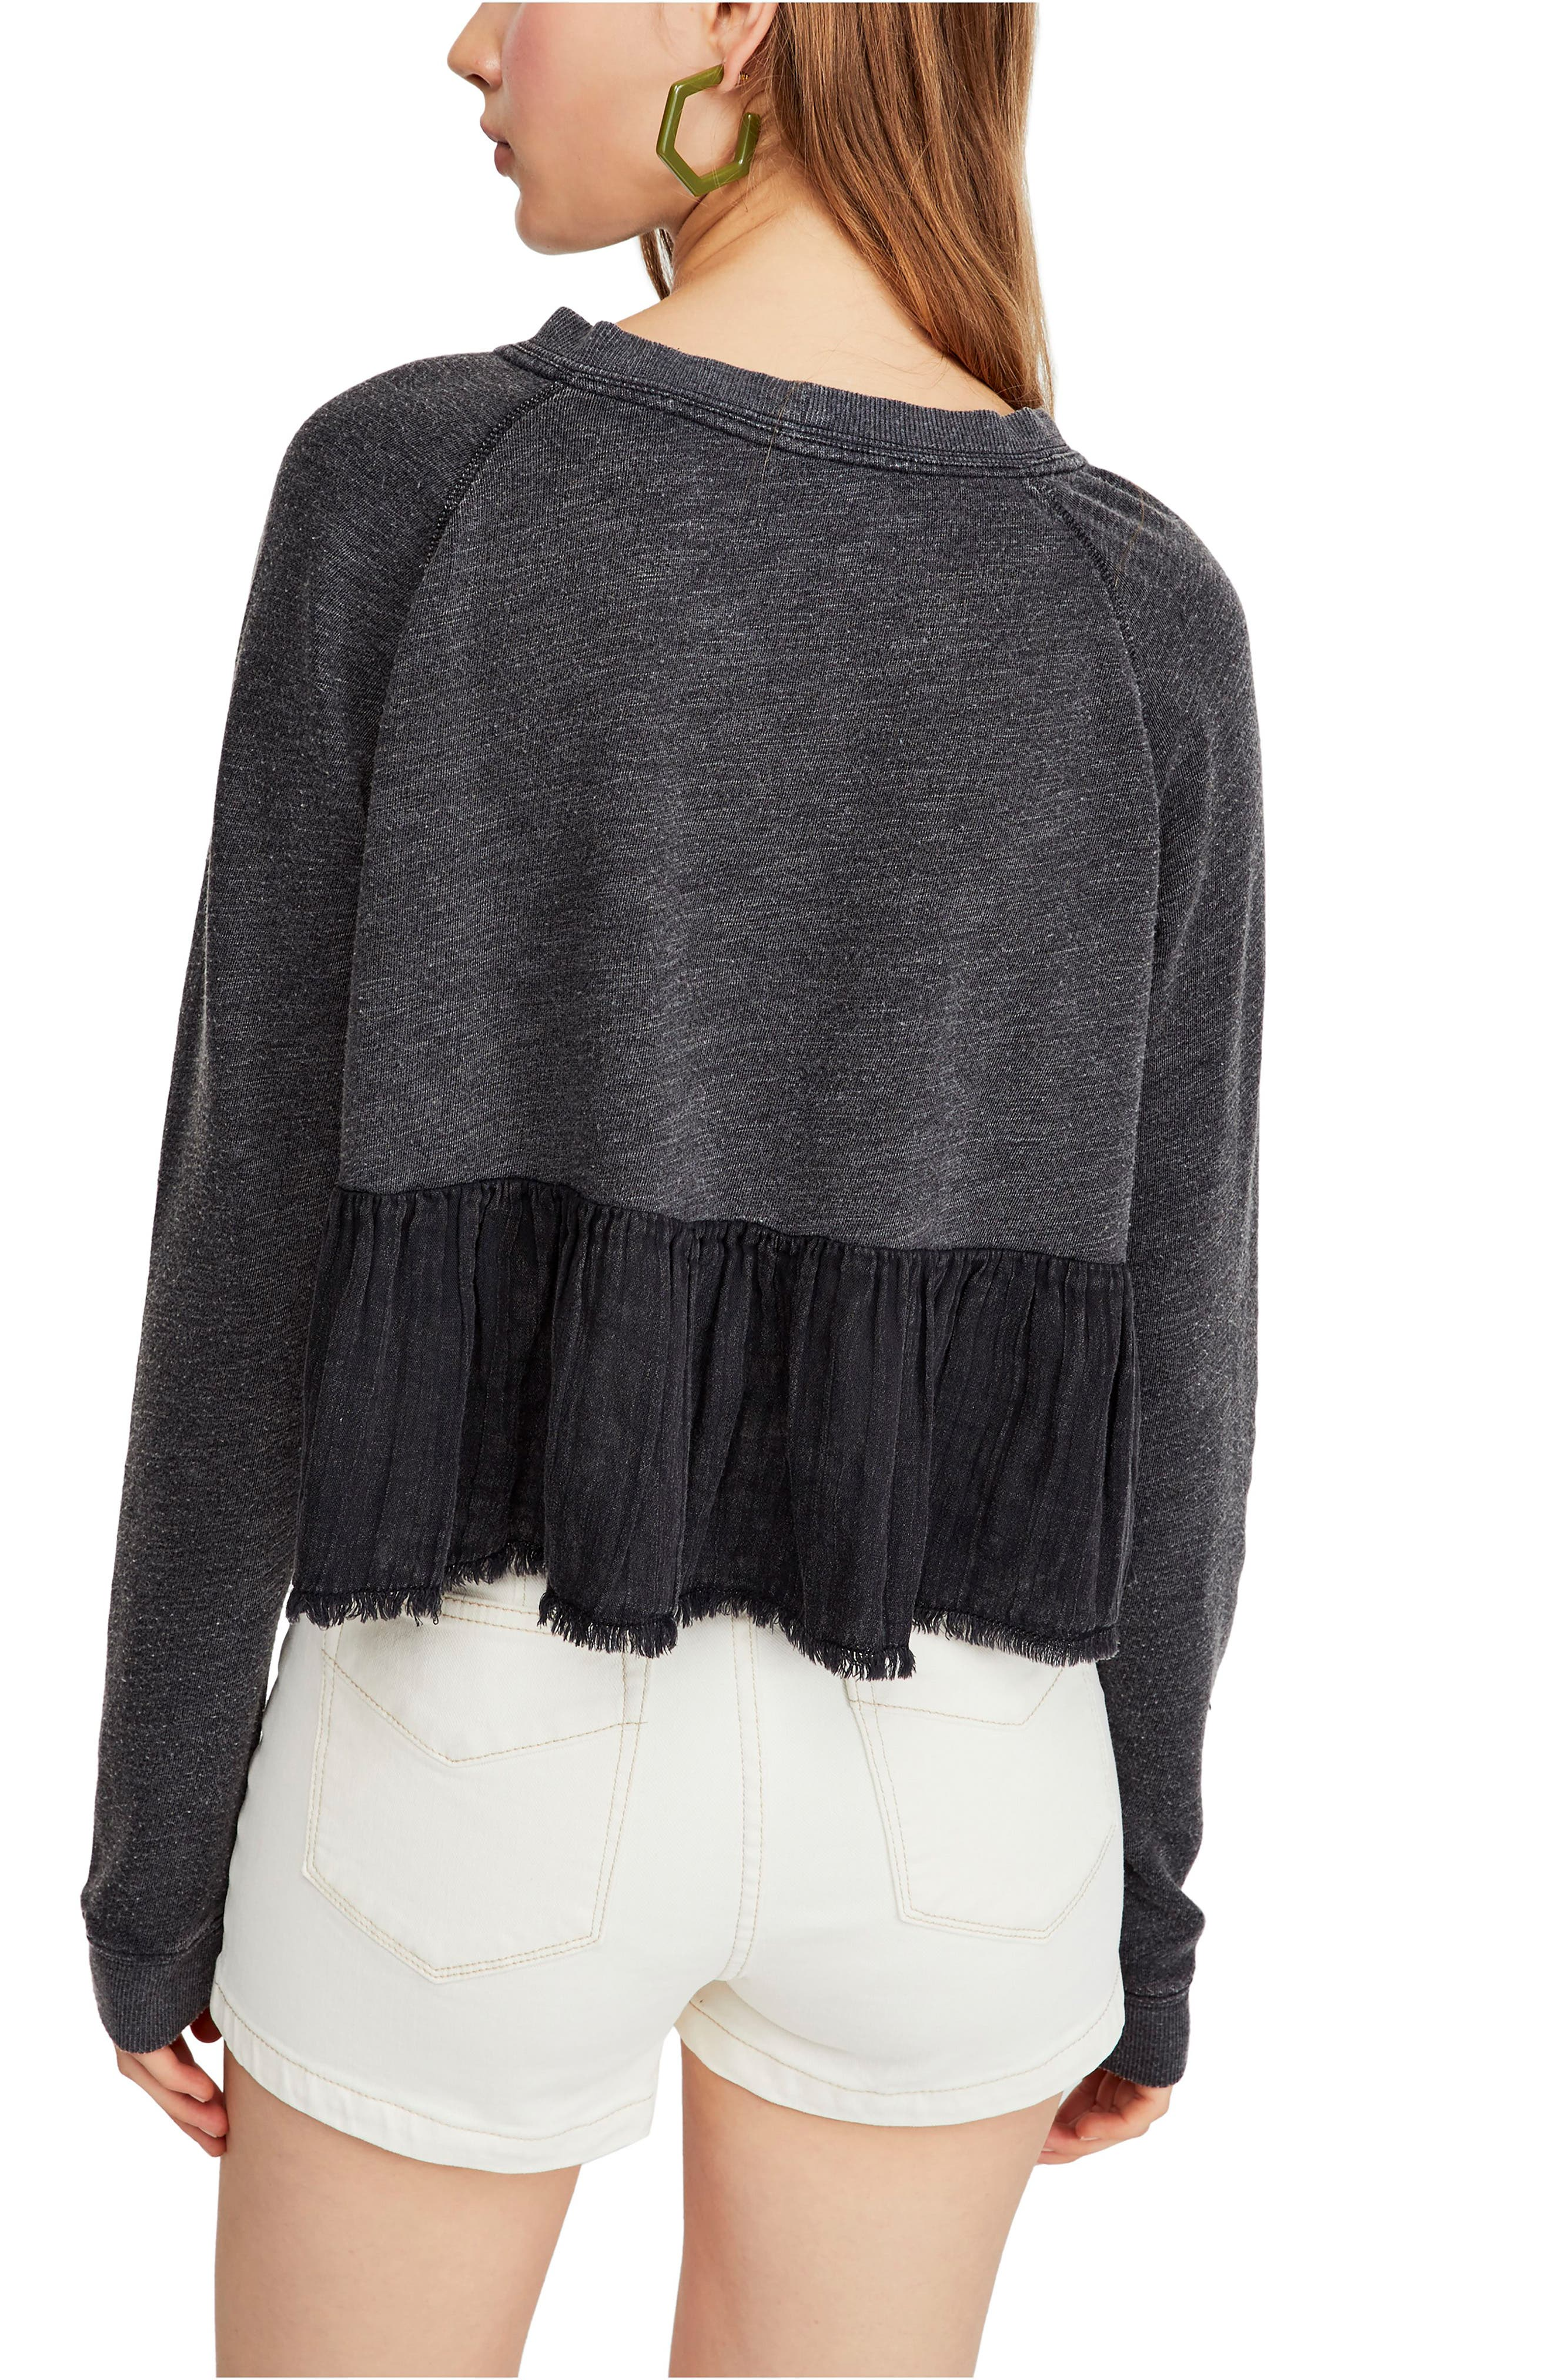 FREE PEOPLE, Sweet Jane Pullover, Alternate thumbnail 2, color, 001